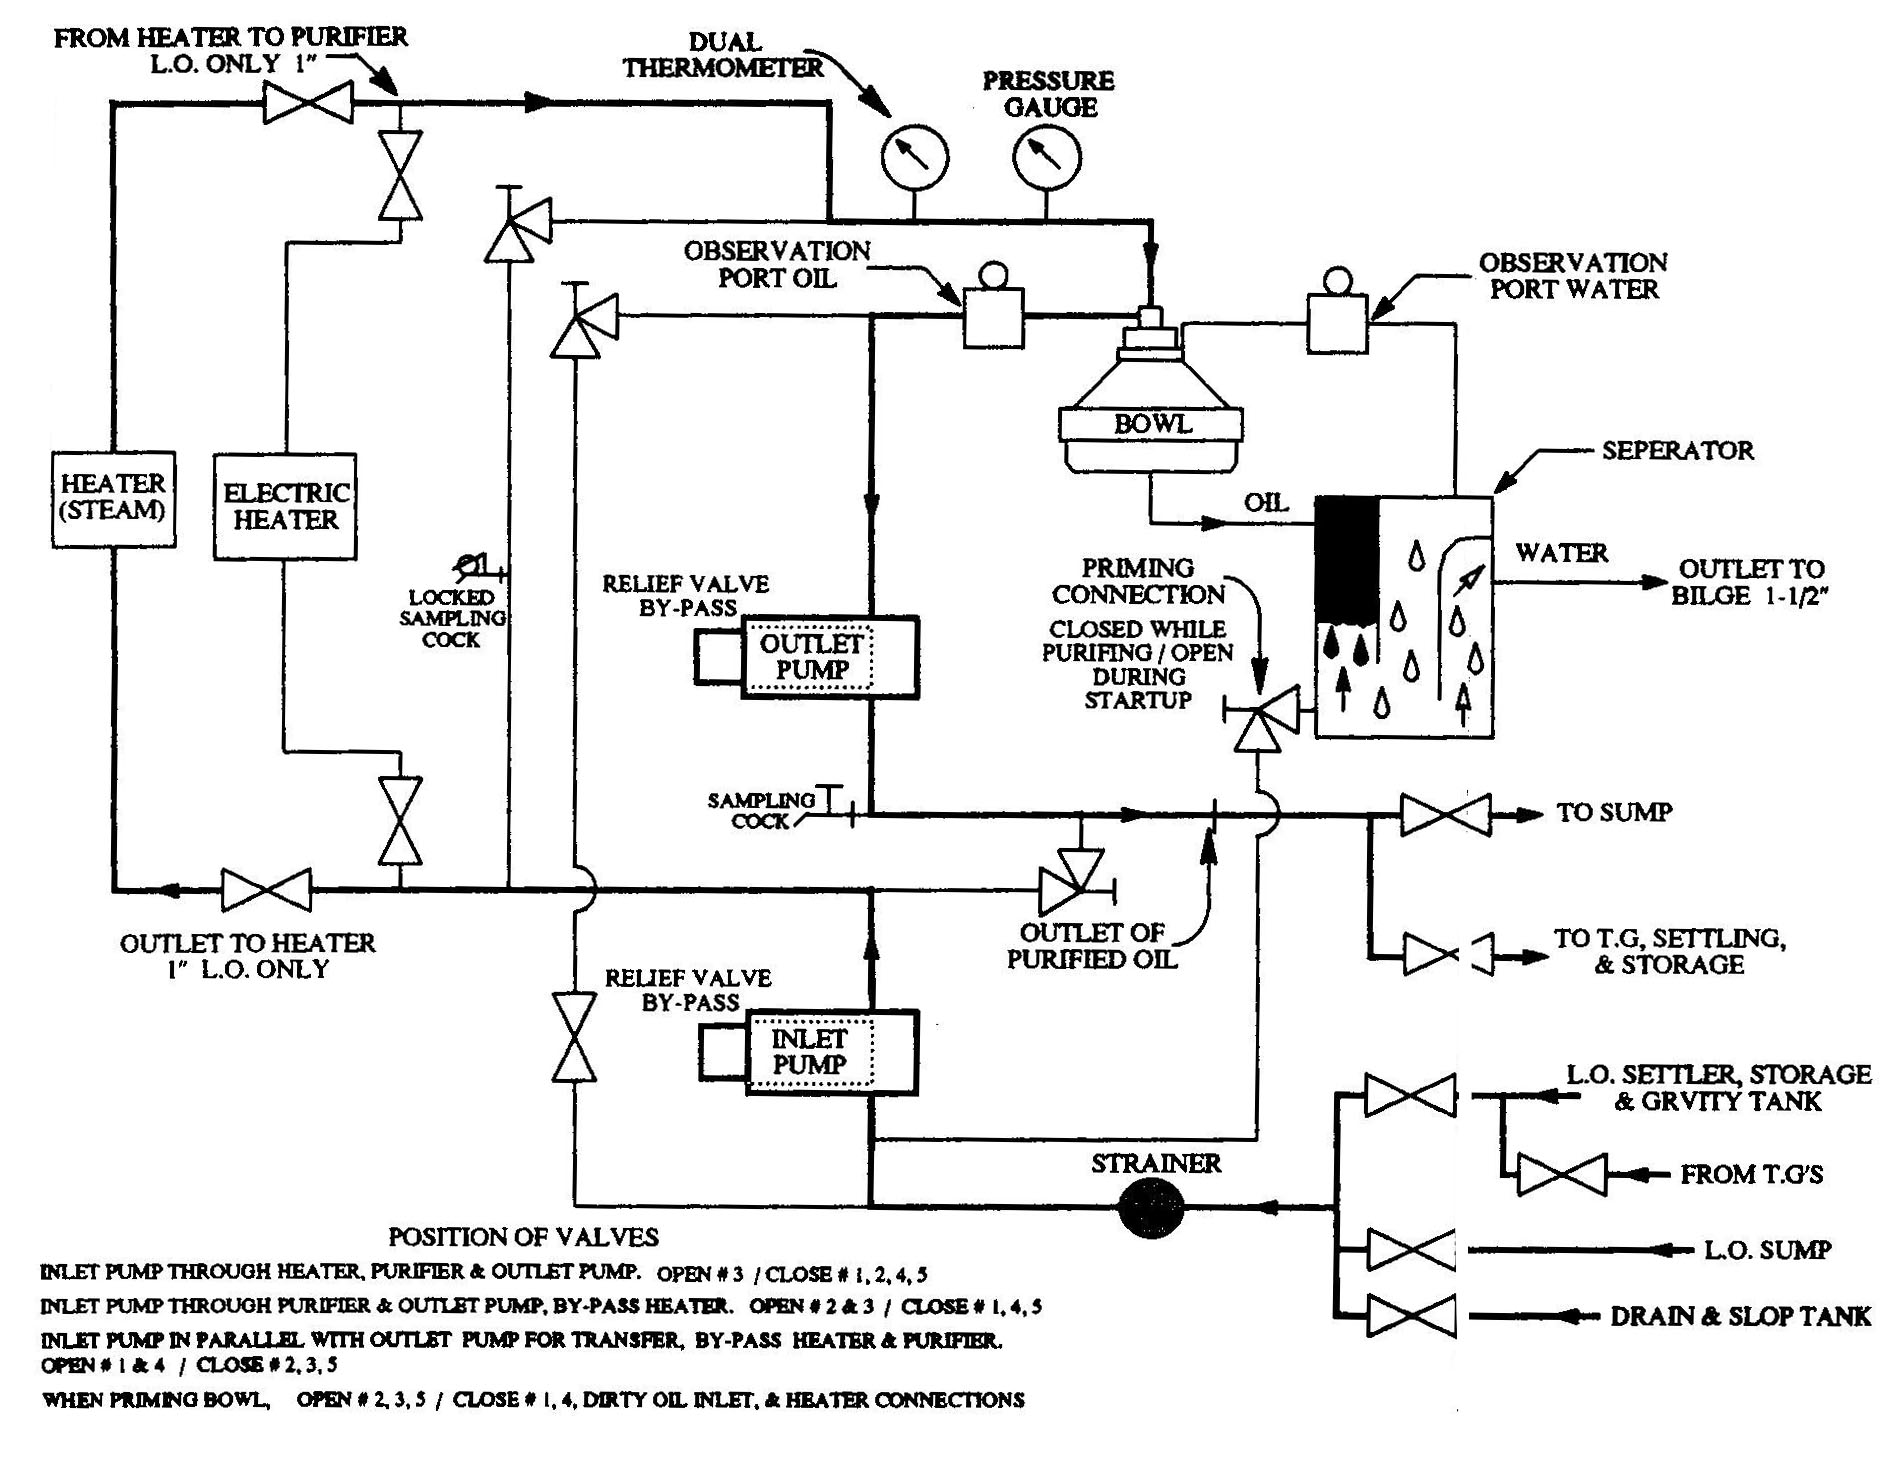 Tsps Engineering Manual Oil Tank Schematic Lube Purifier System